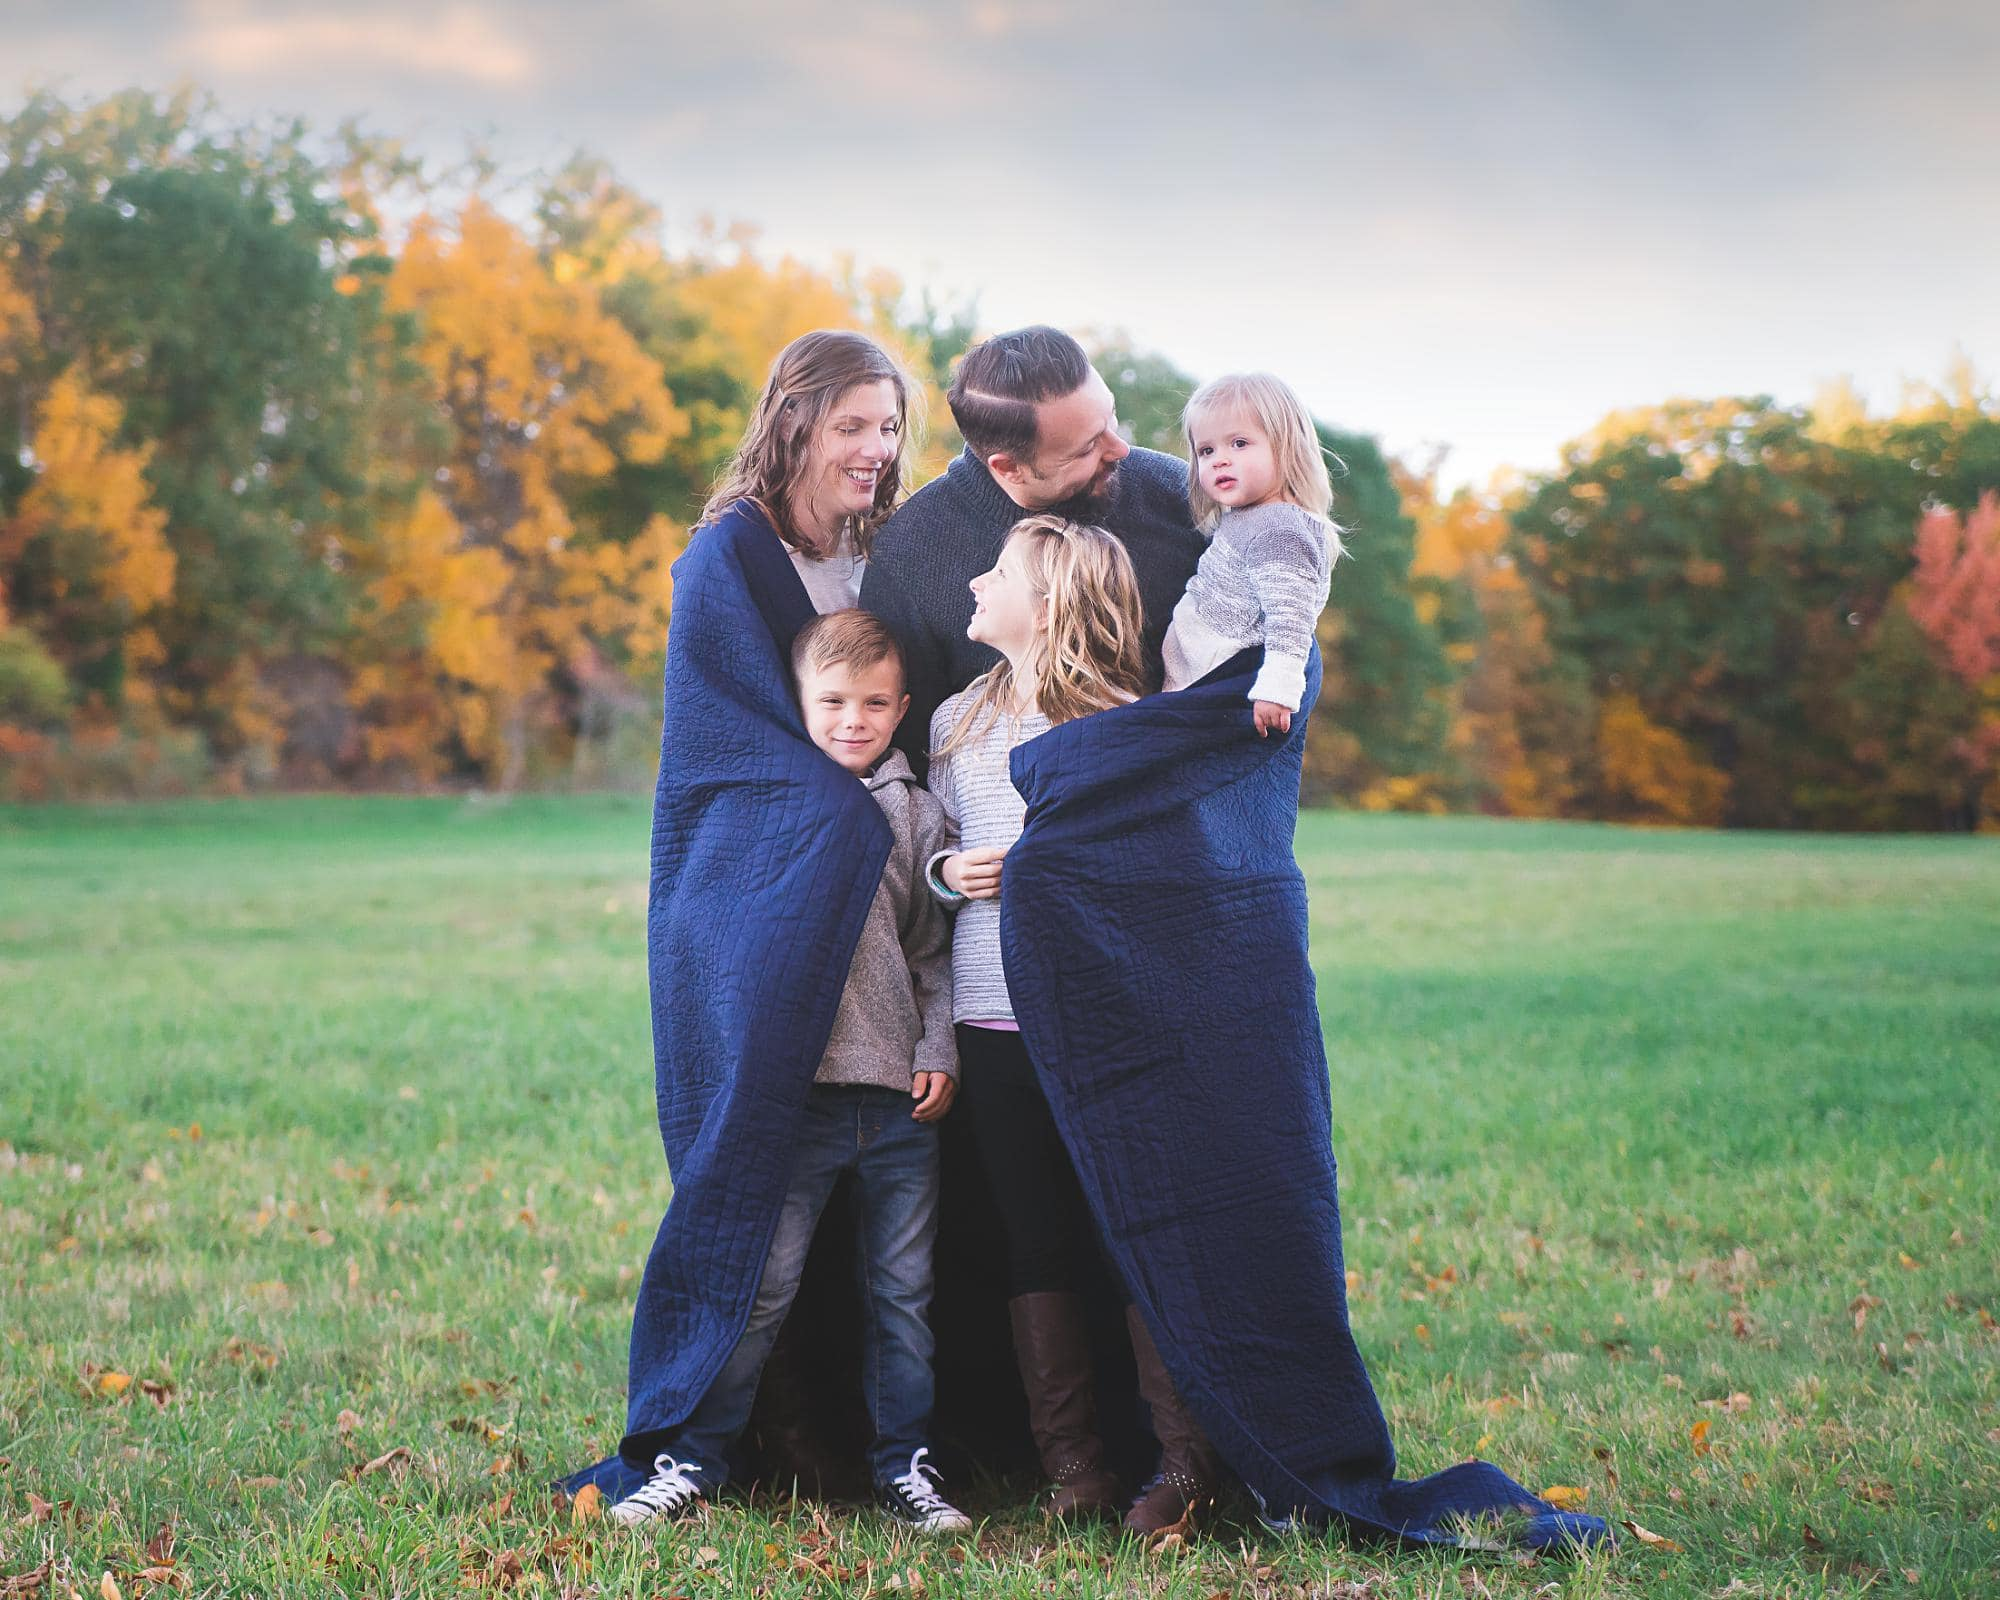 Family of 5 hugging in a blue blanket outside in the Fall